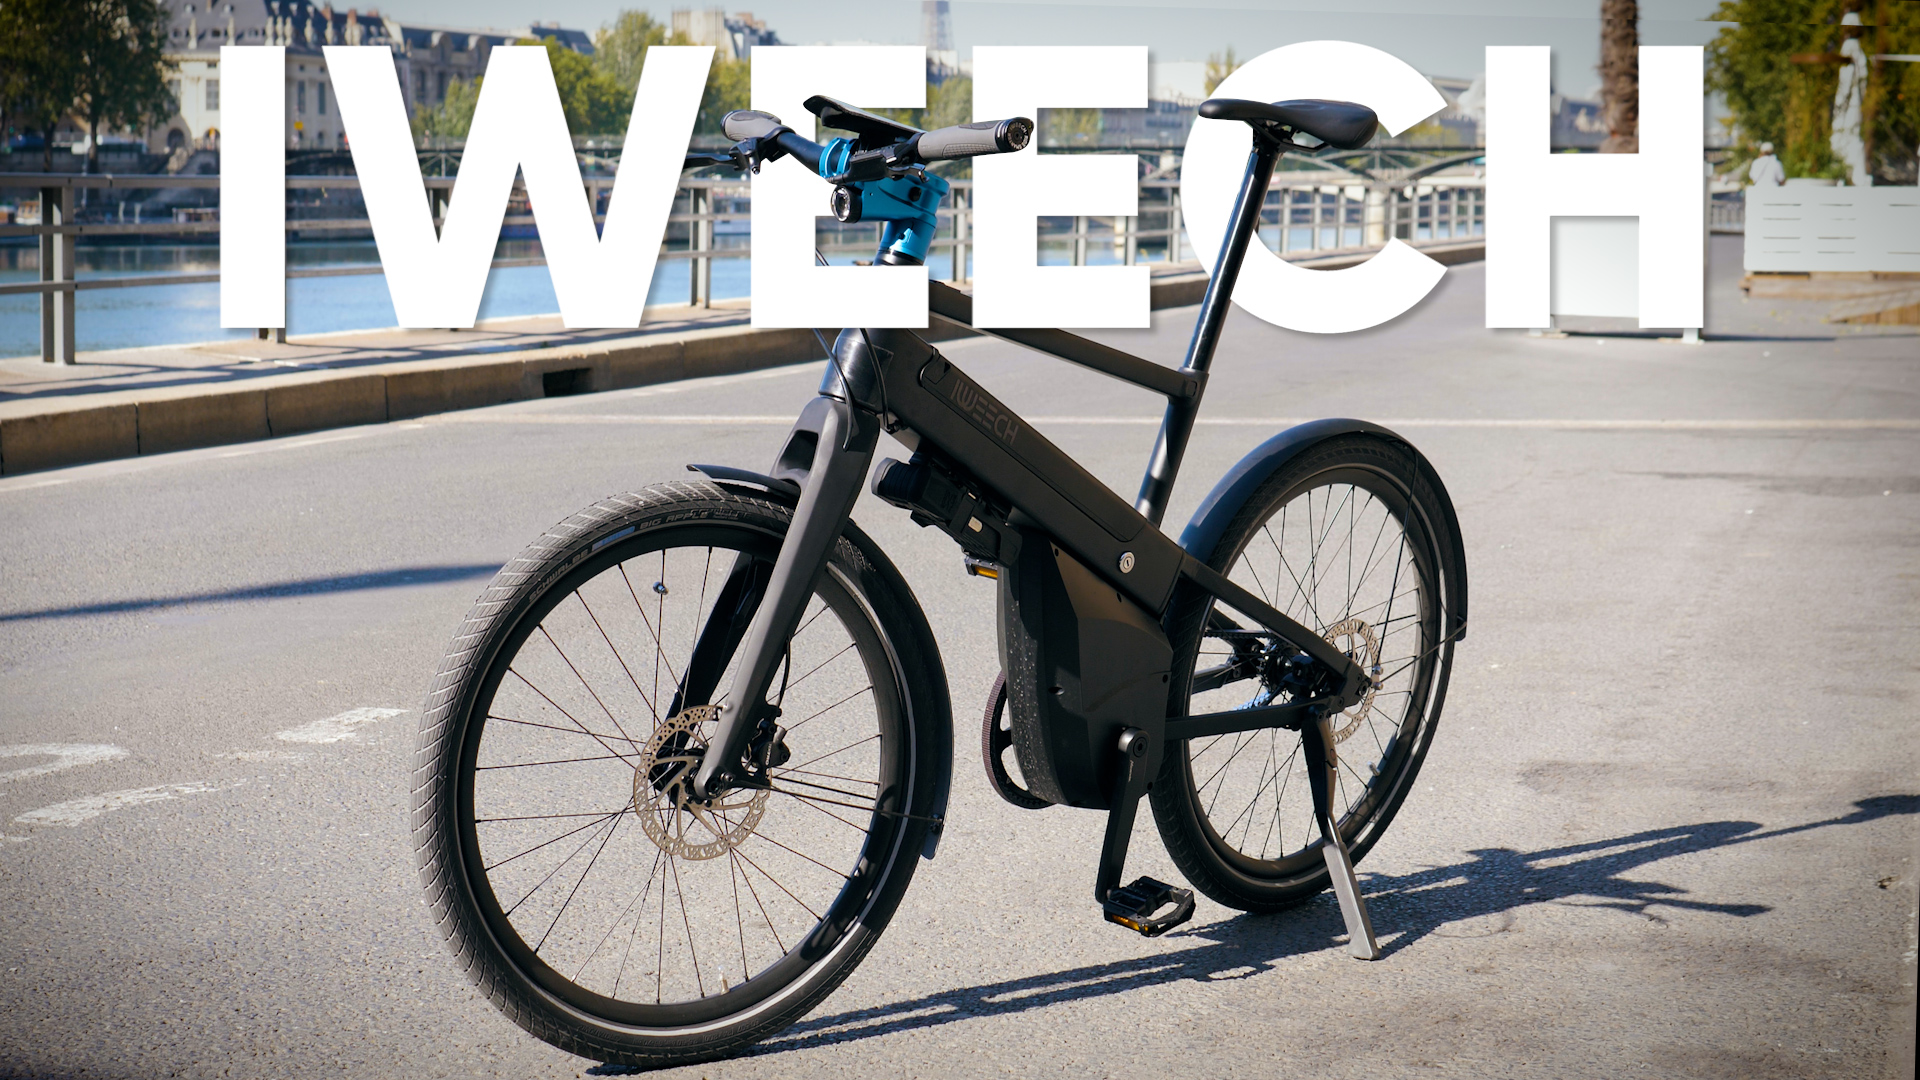 Test du vélo Iweech : une excellente surprise !